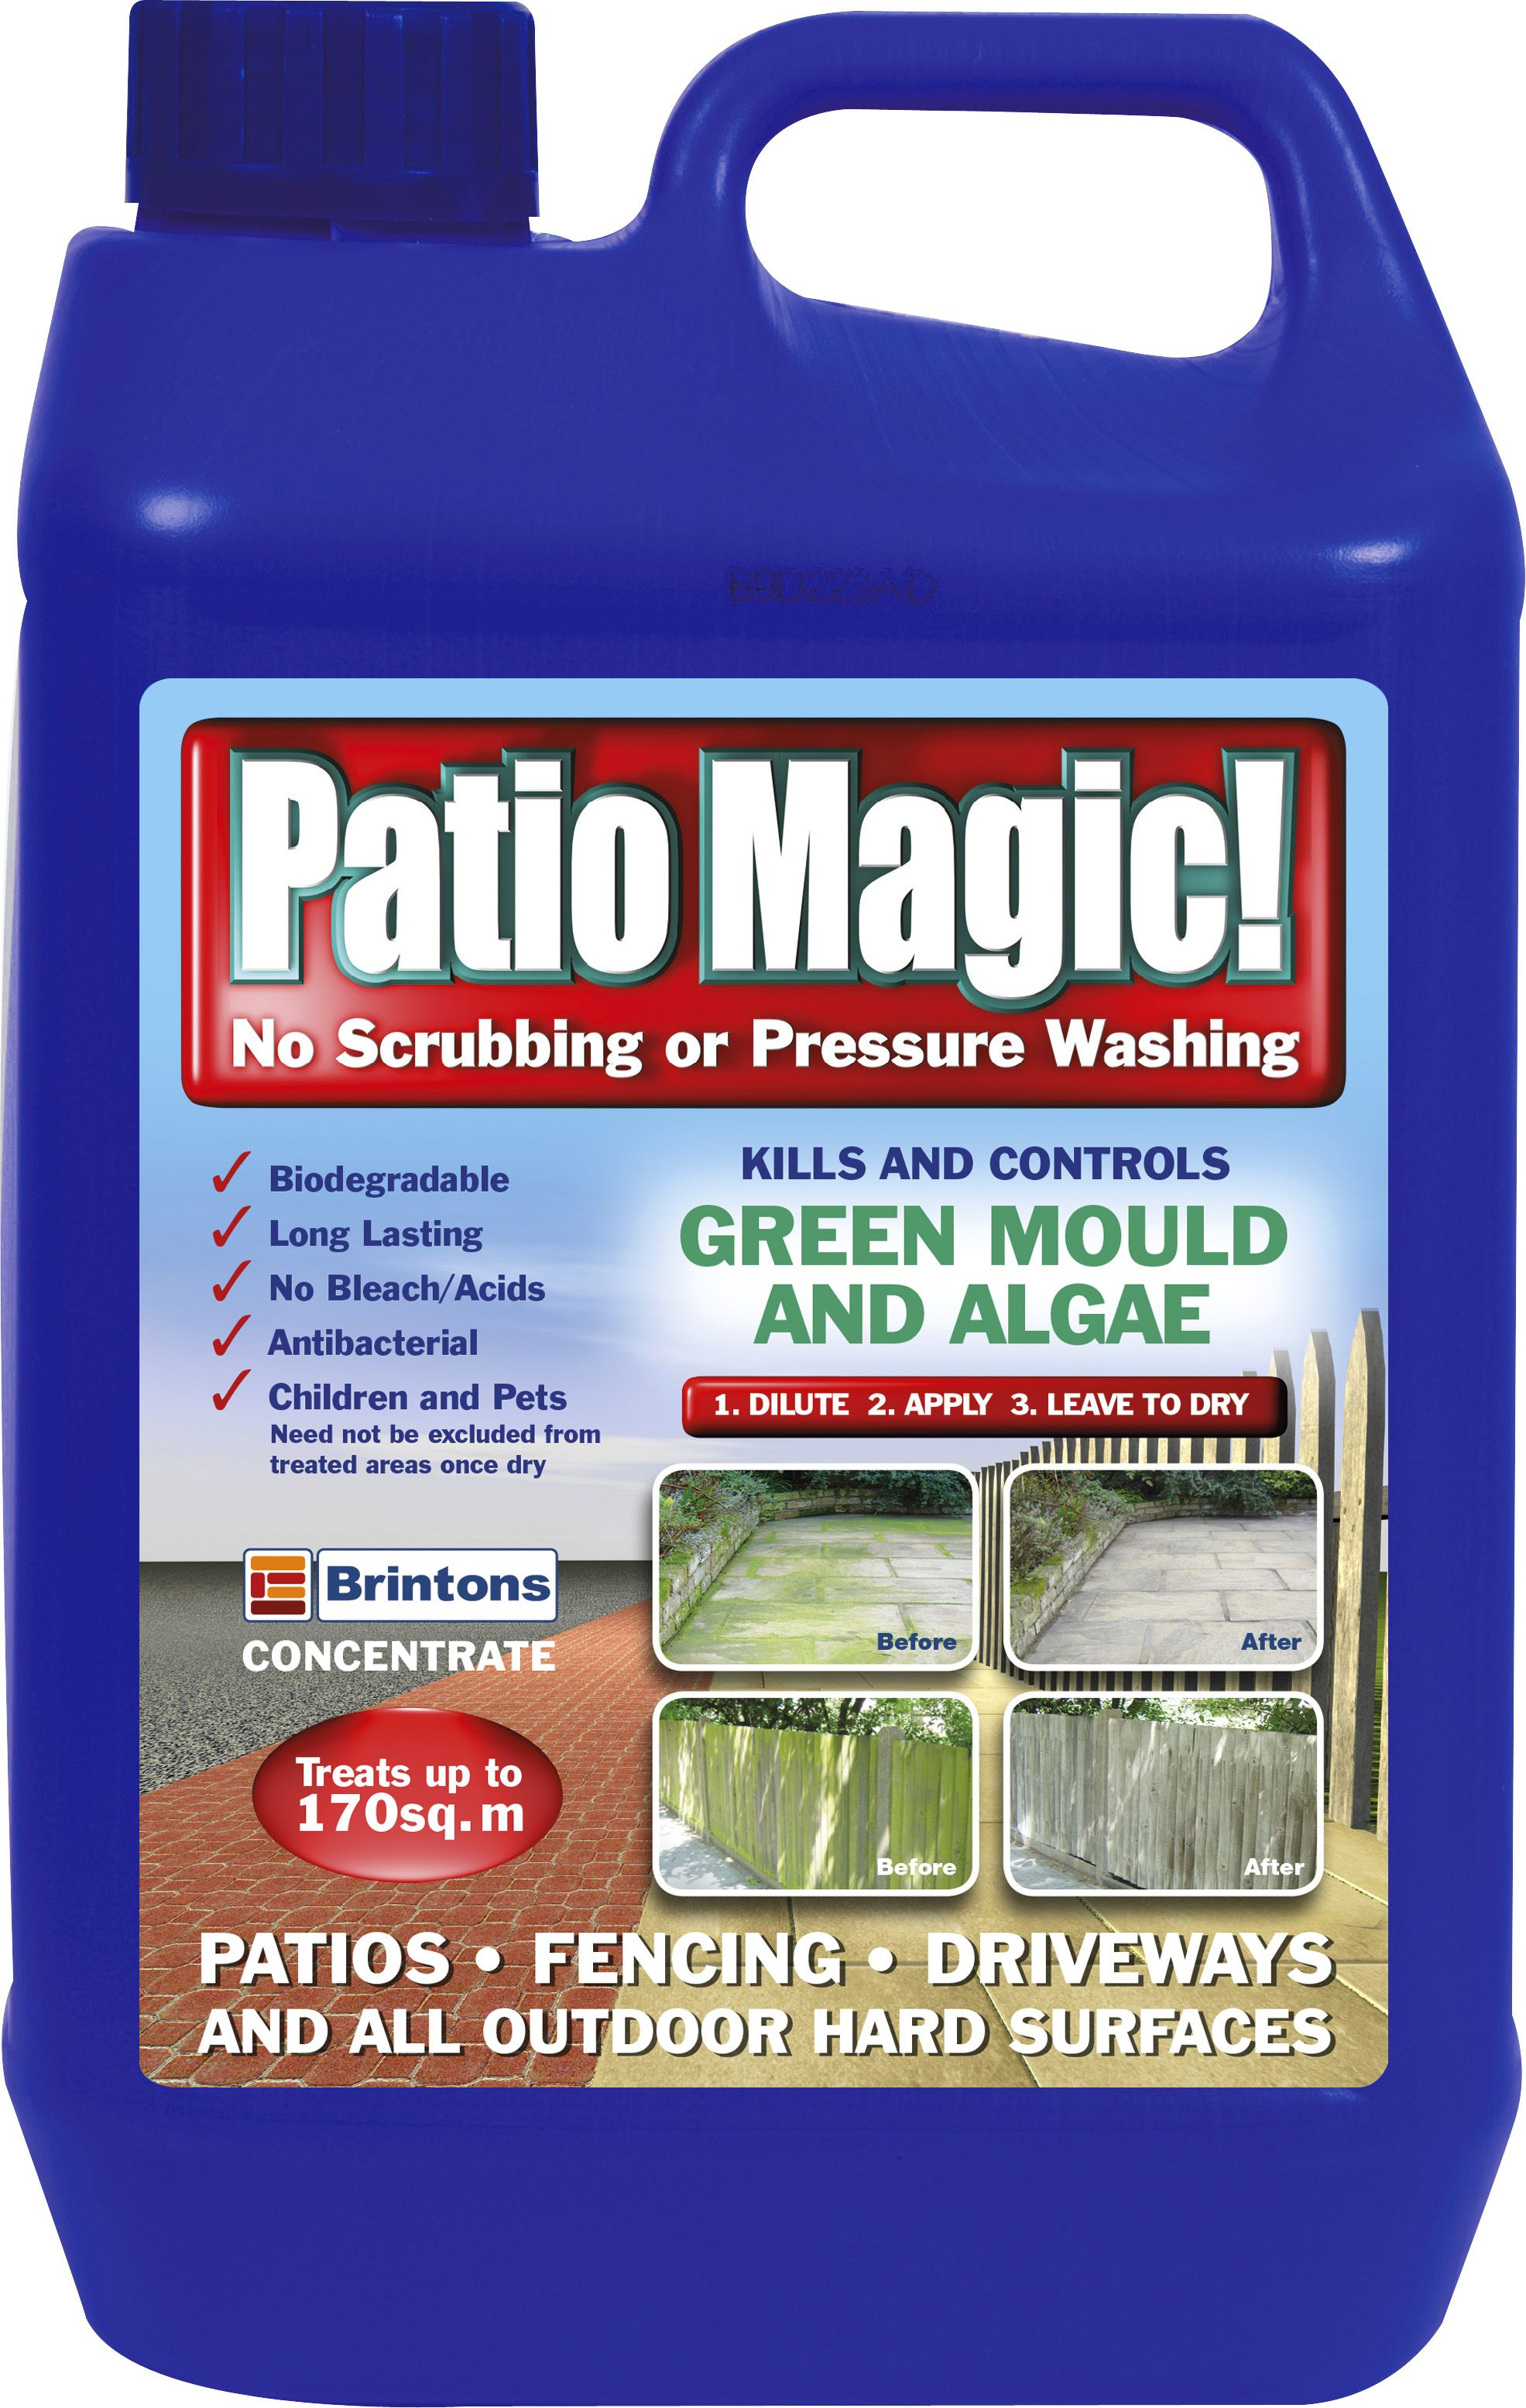 Brintons Patio Magic Concentrate Patio & driveway cleaner 5L | Departments  | DIY at B&Q